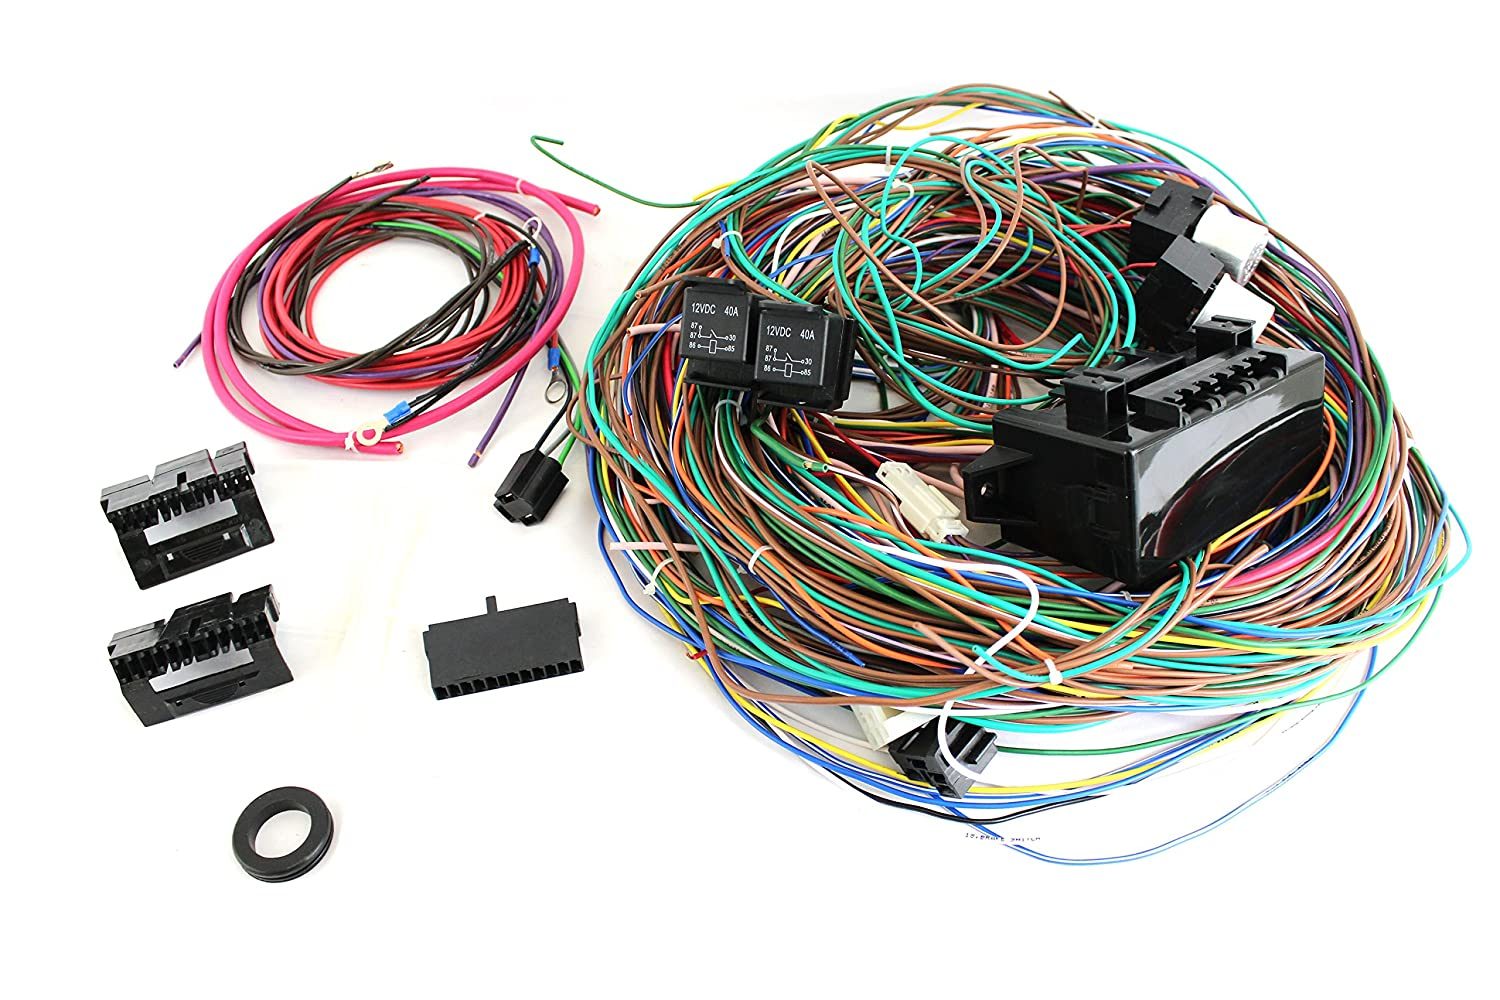 91YoamXFx2L._SL1500_ amazon com 12v 24 circuit 15 fuse street hot rat rod wiring street rod wiring harness kit at mifinder.co